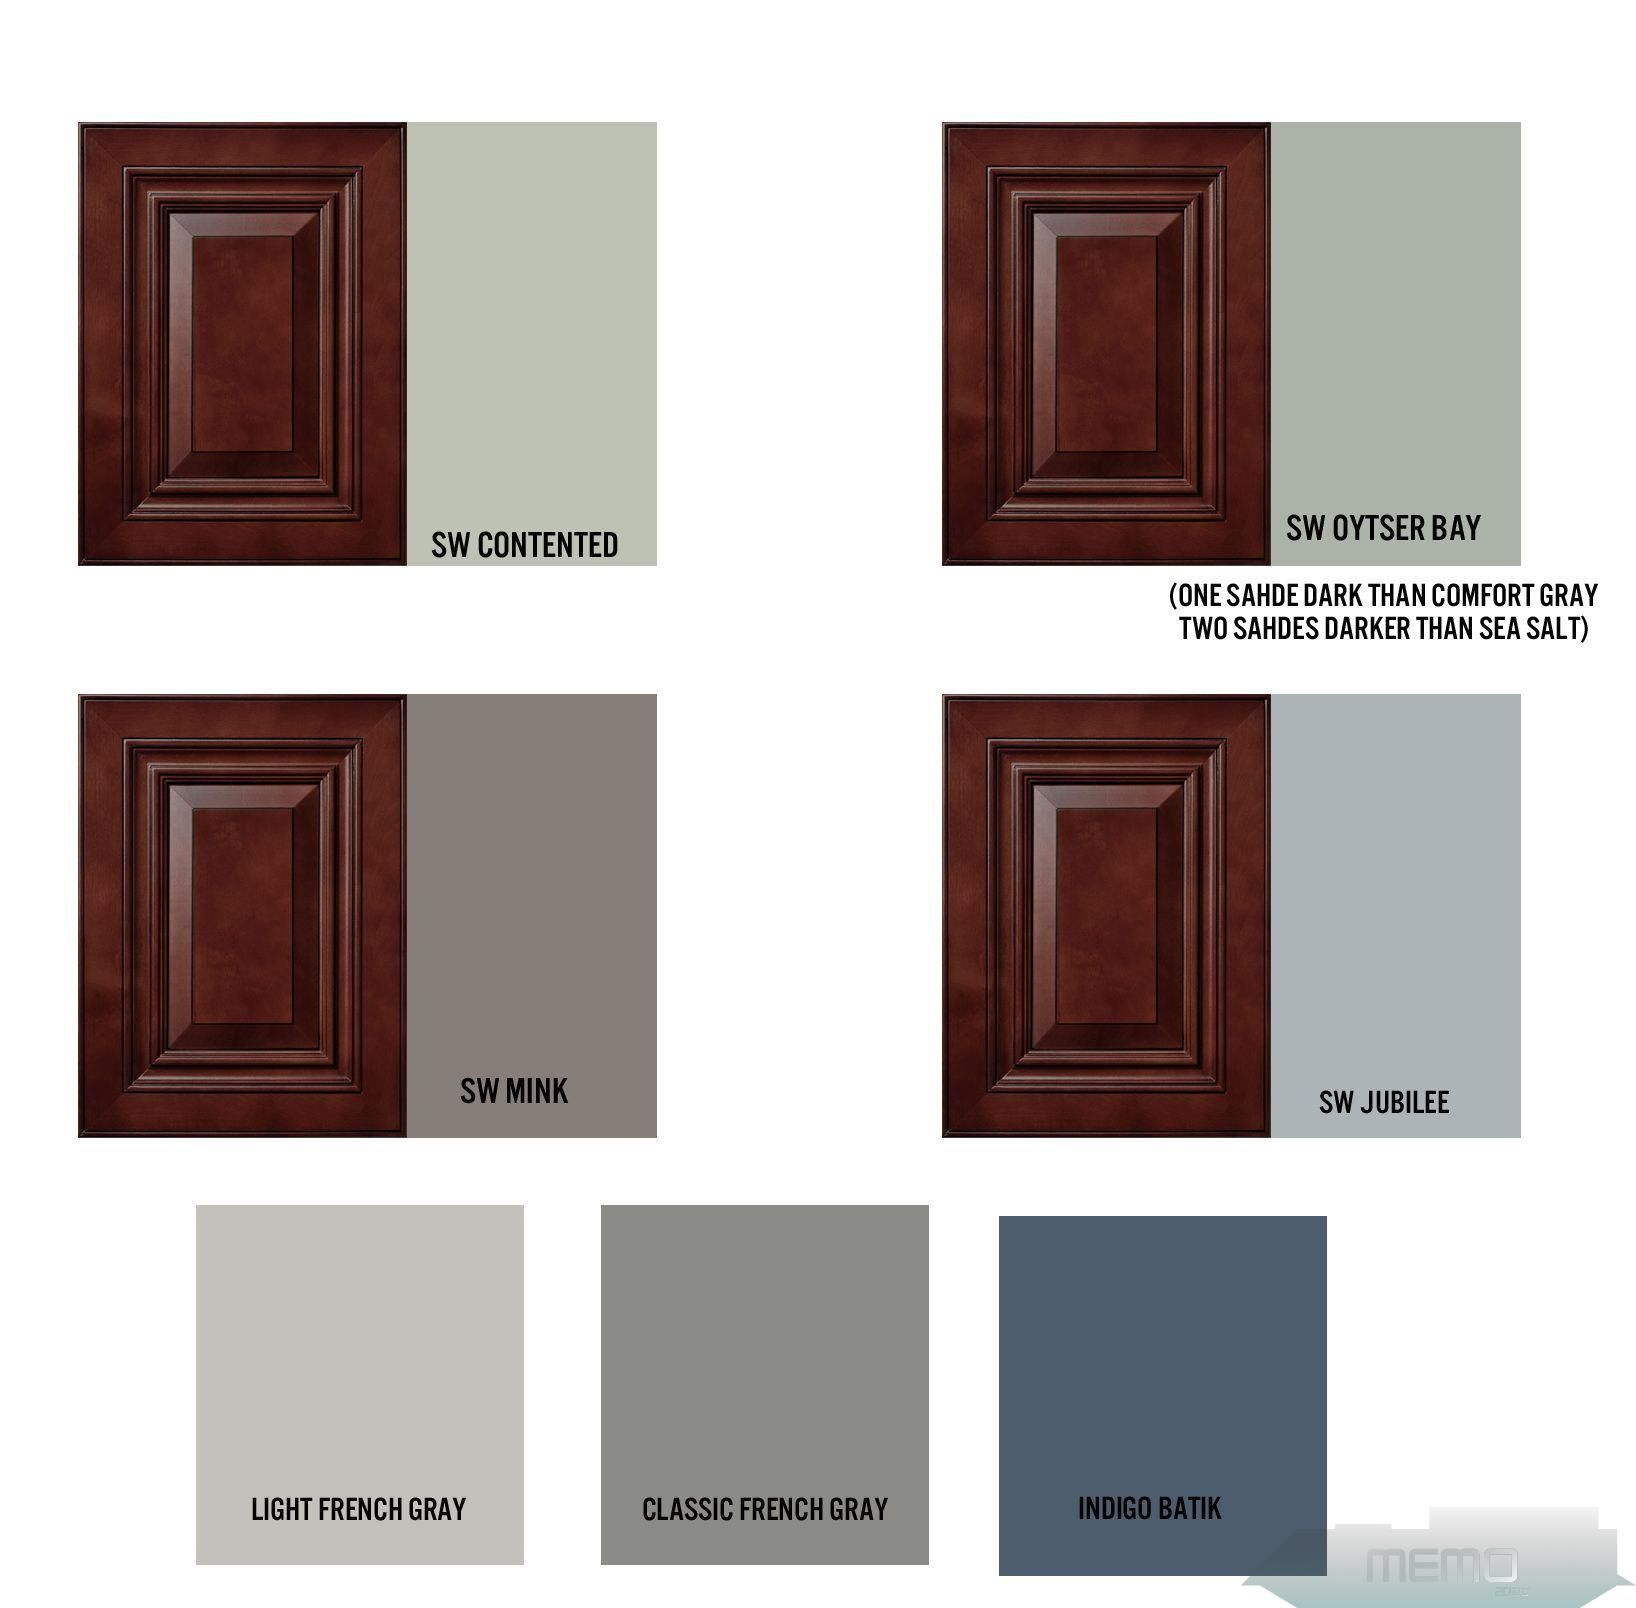 Jul 30 2015 Paint Colors For Cherry Cabinet Kitchen And Combined Living Room Www In 2020 Kitchen Paint Colors With Cherry Cherry Wood Kitchens Kitchen Wall Colors